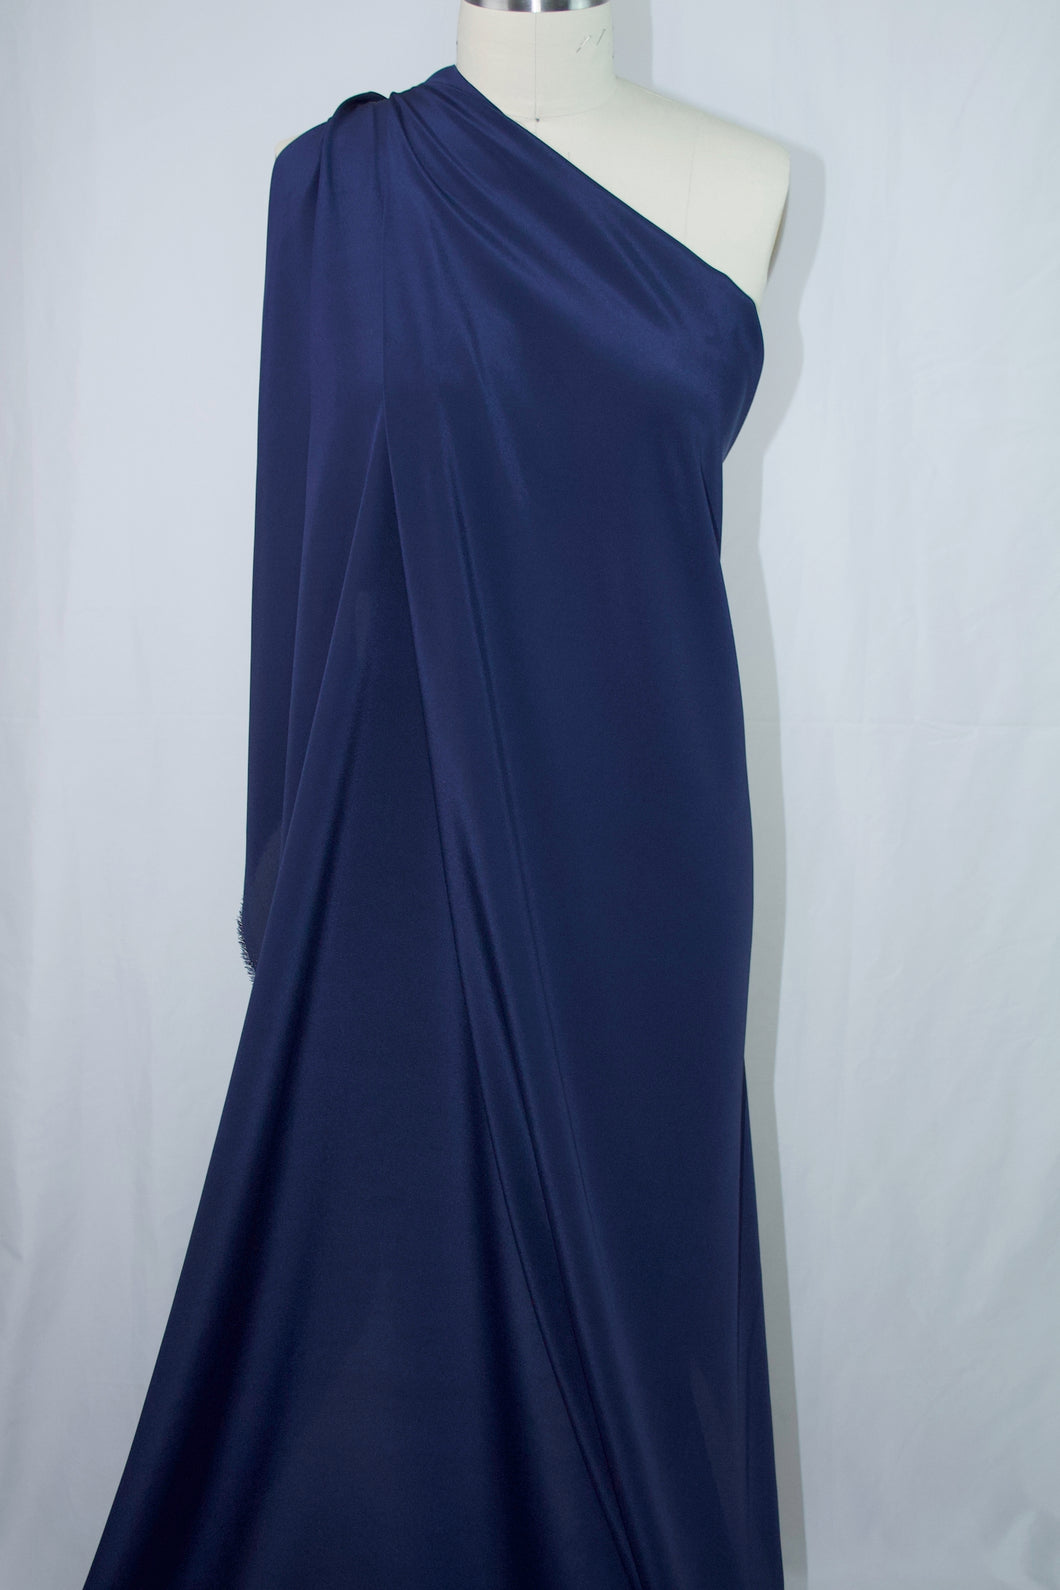 Wide! Designer Silk Crepe de Chine - Bright Navy Blue